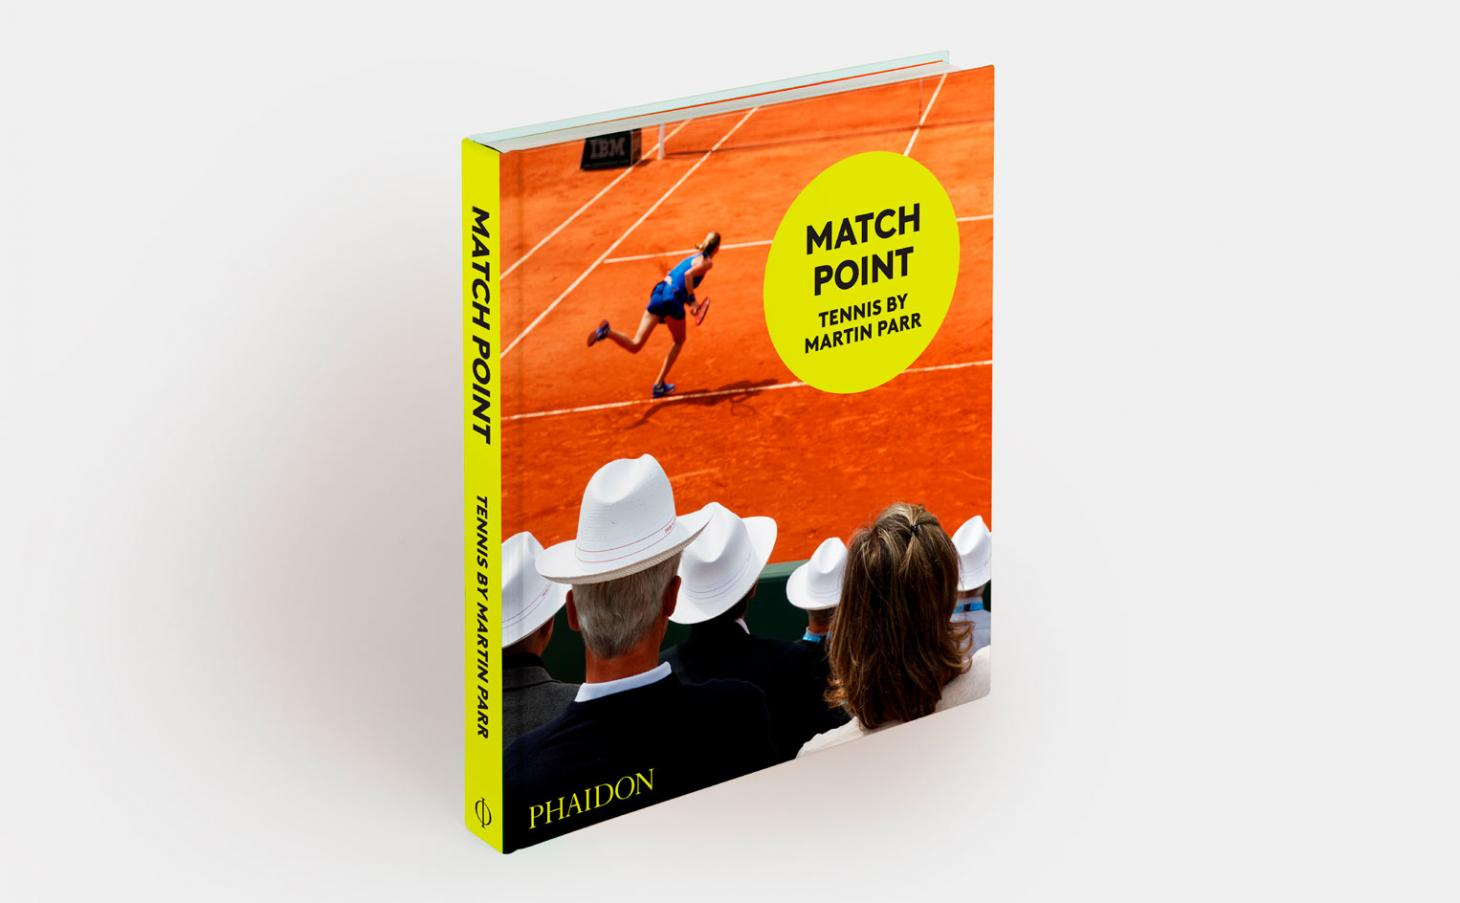 Tennis with Martin Parr, by Martin Parr is published by Phaidon on 9 September, £39.95